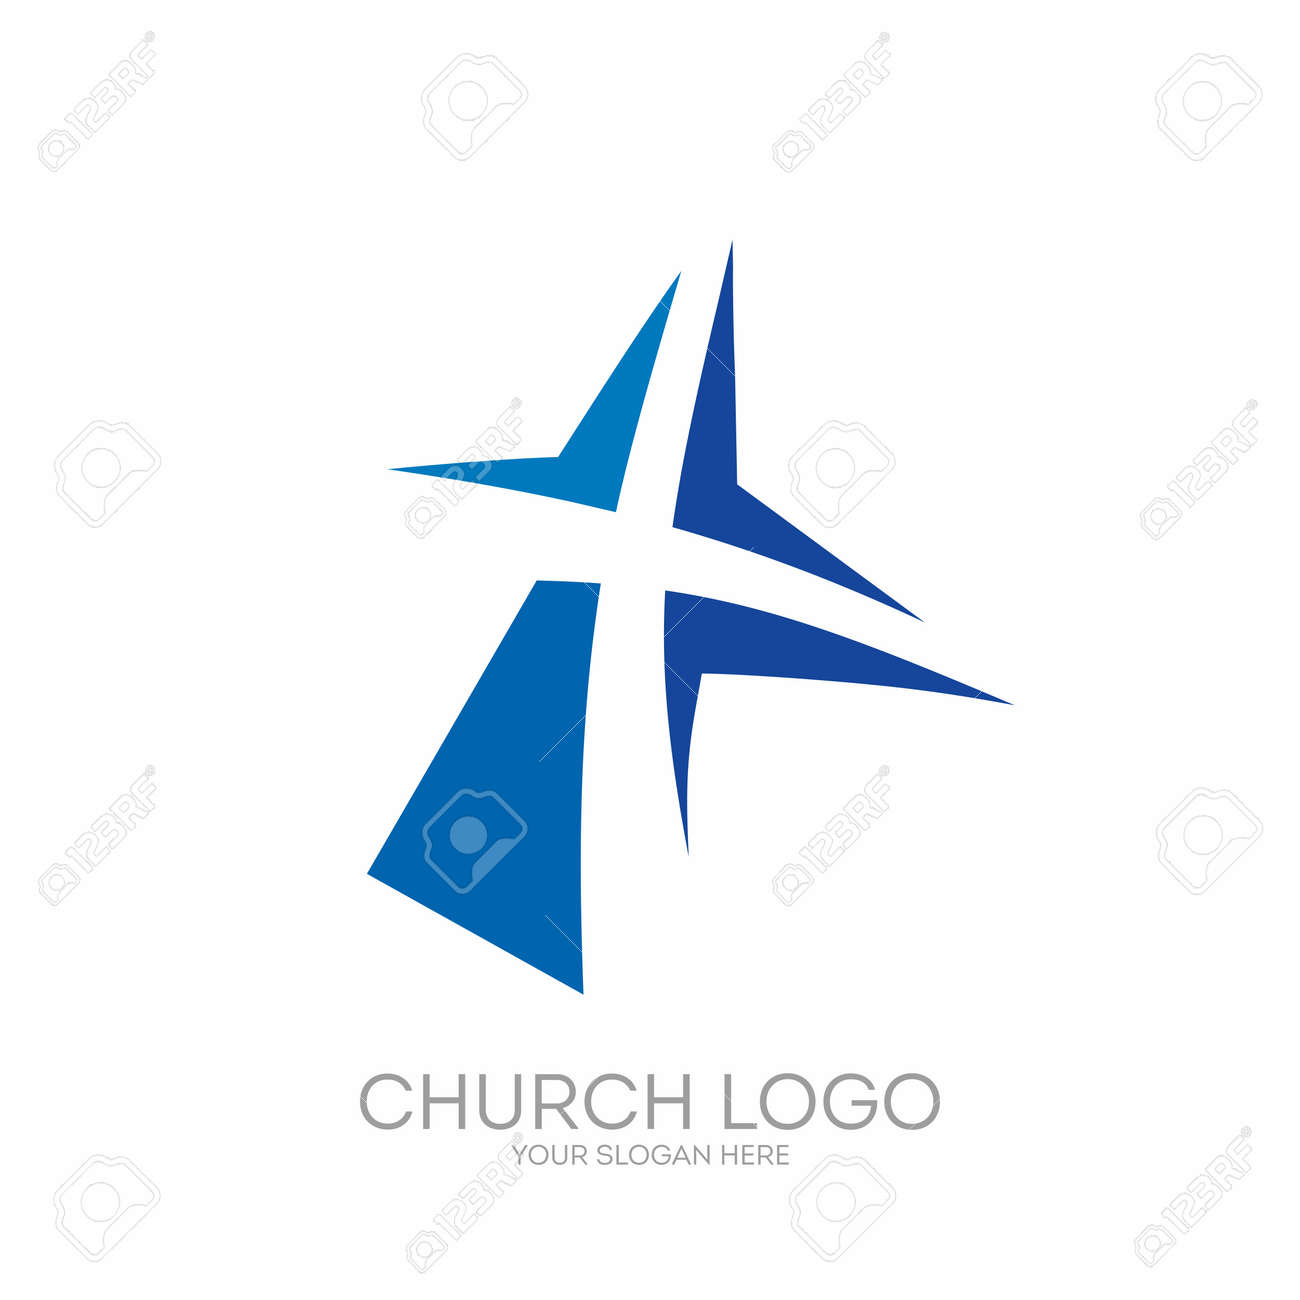 Church logo christian symbols the cross of jesus christ royalty church logo christian symbols the cross of jesus christ stock vector 65715343 buycottarizona Image collections